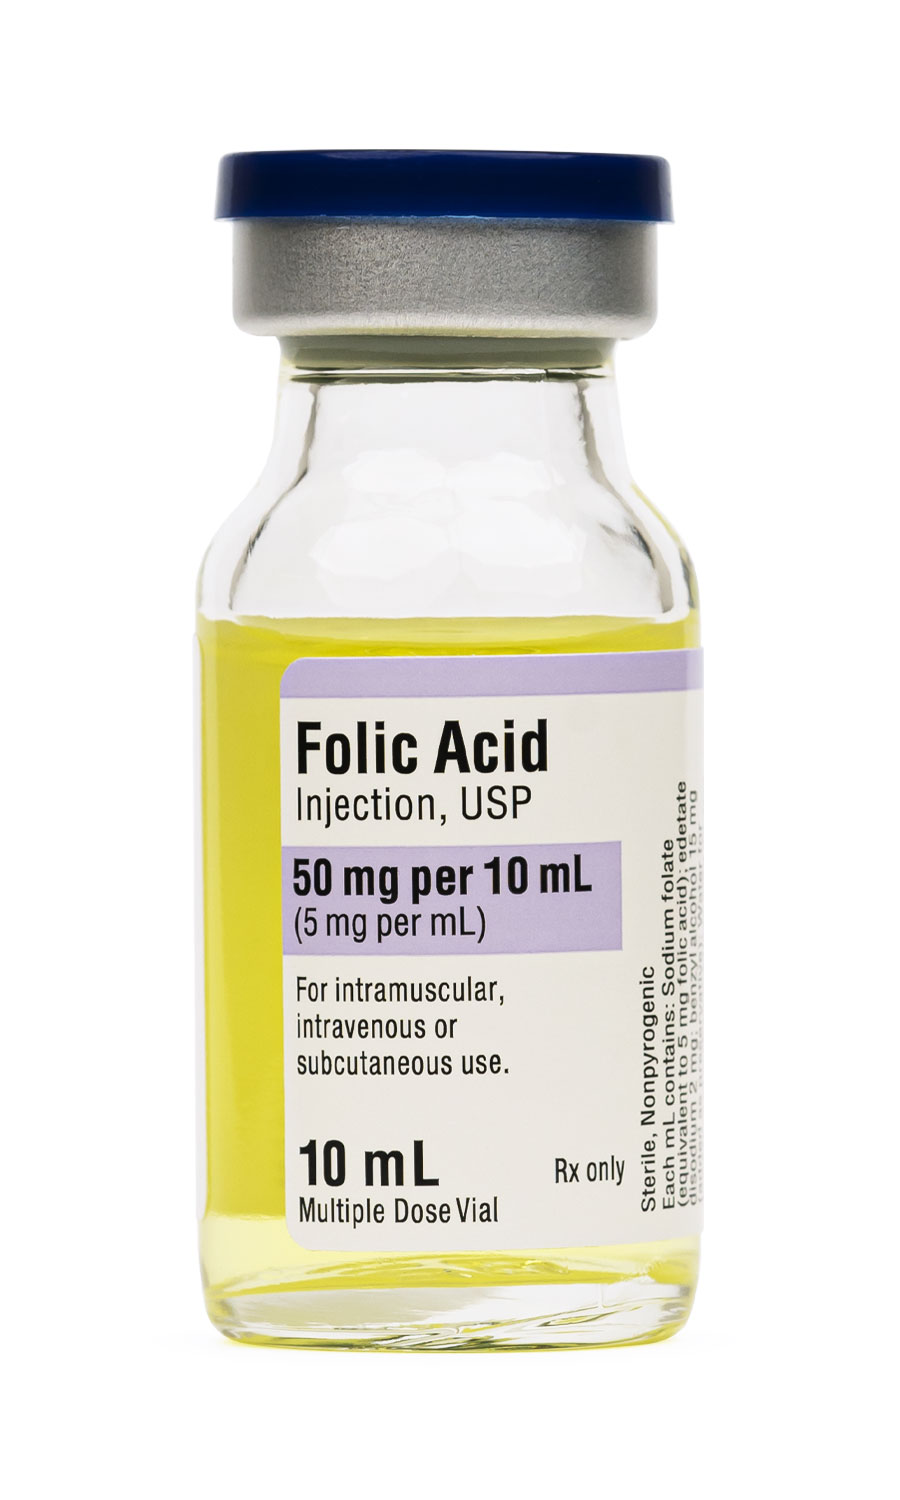 Folic Acid Injection